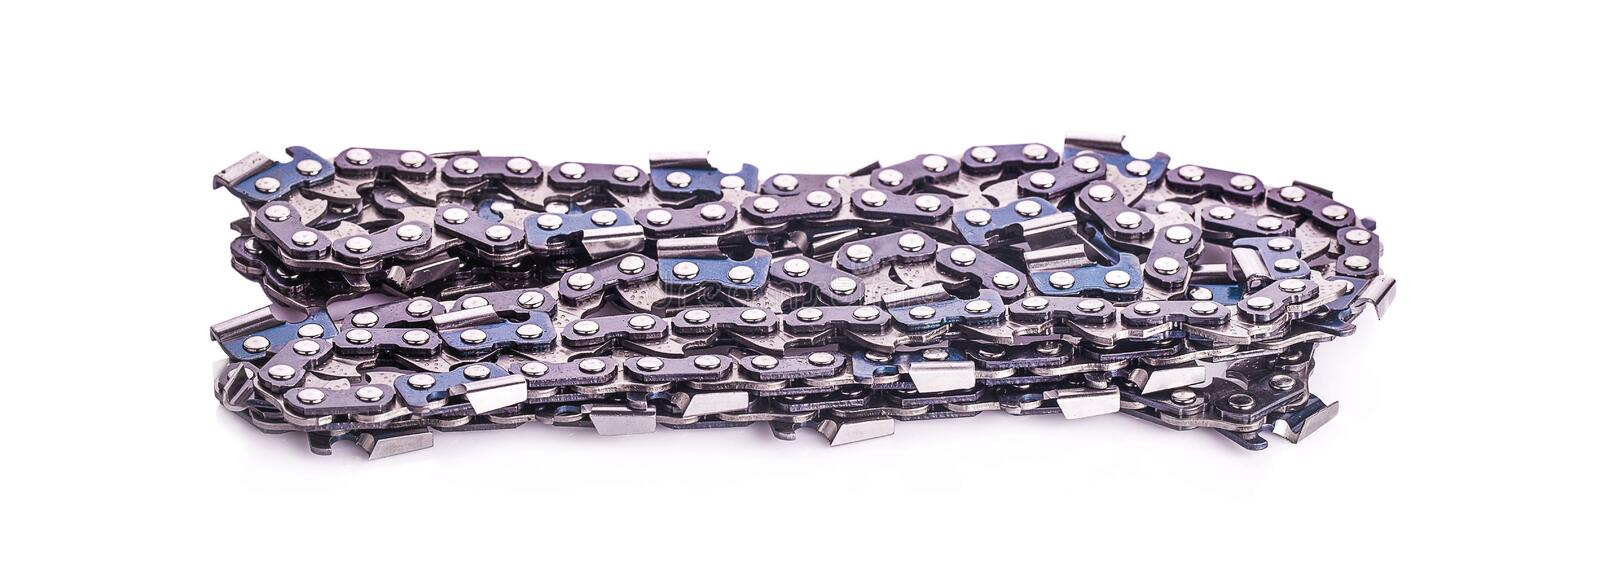 New Chainsaw Chain isolated in studio - High Res.  stock image